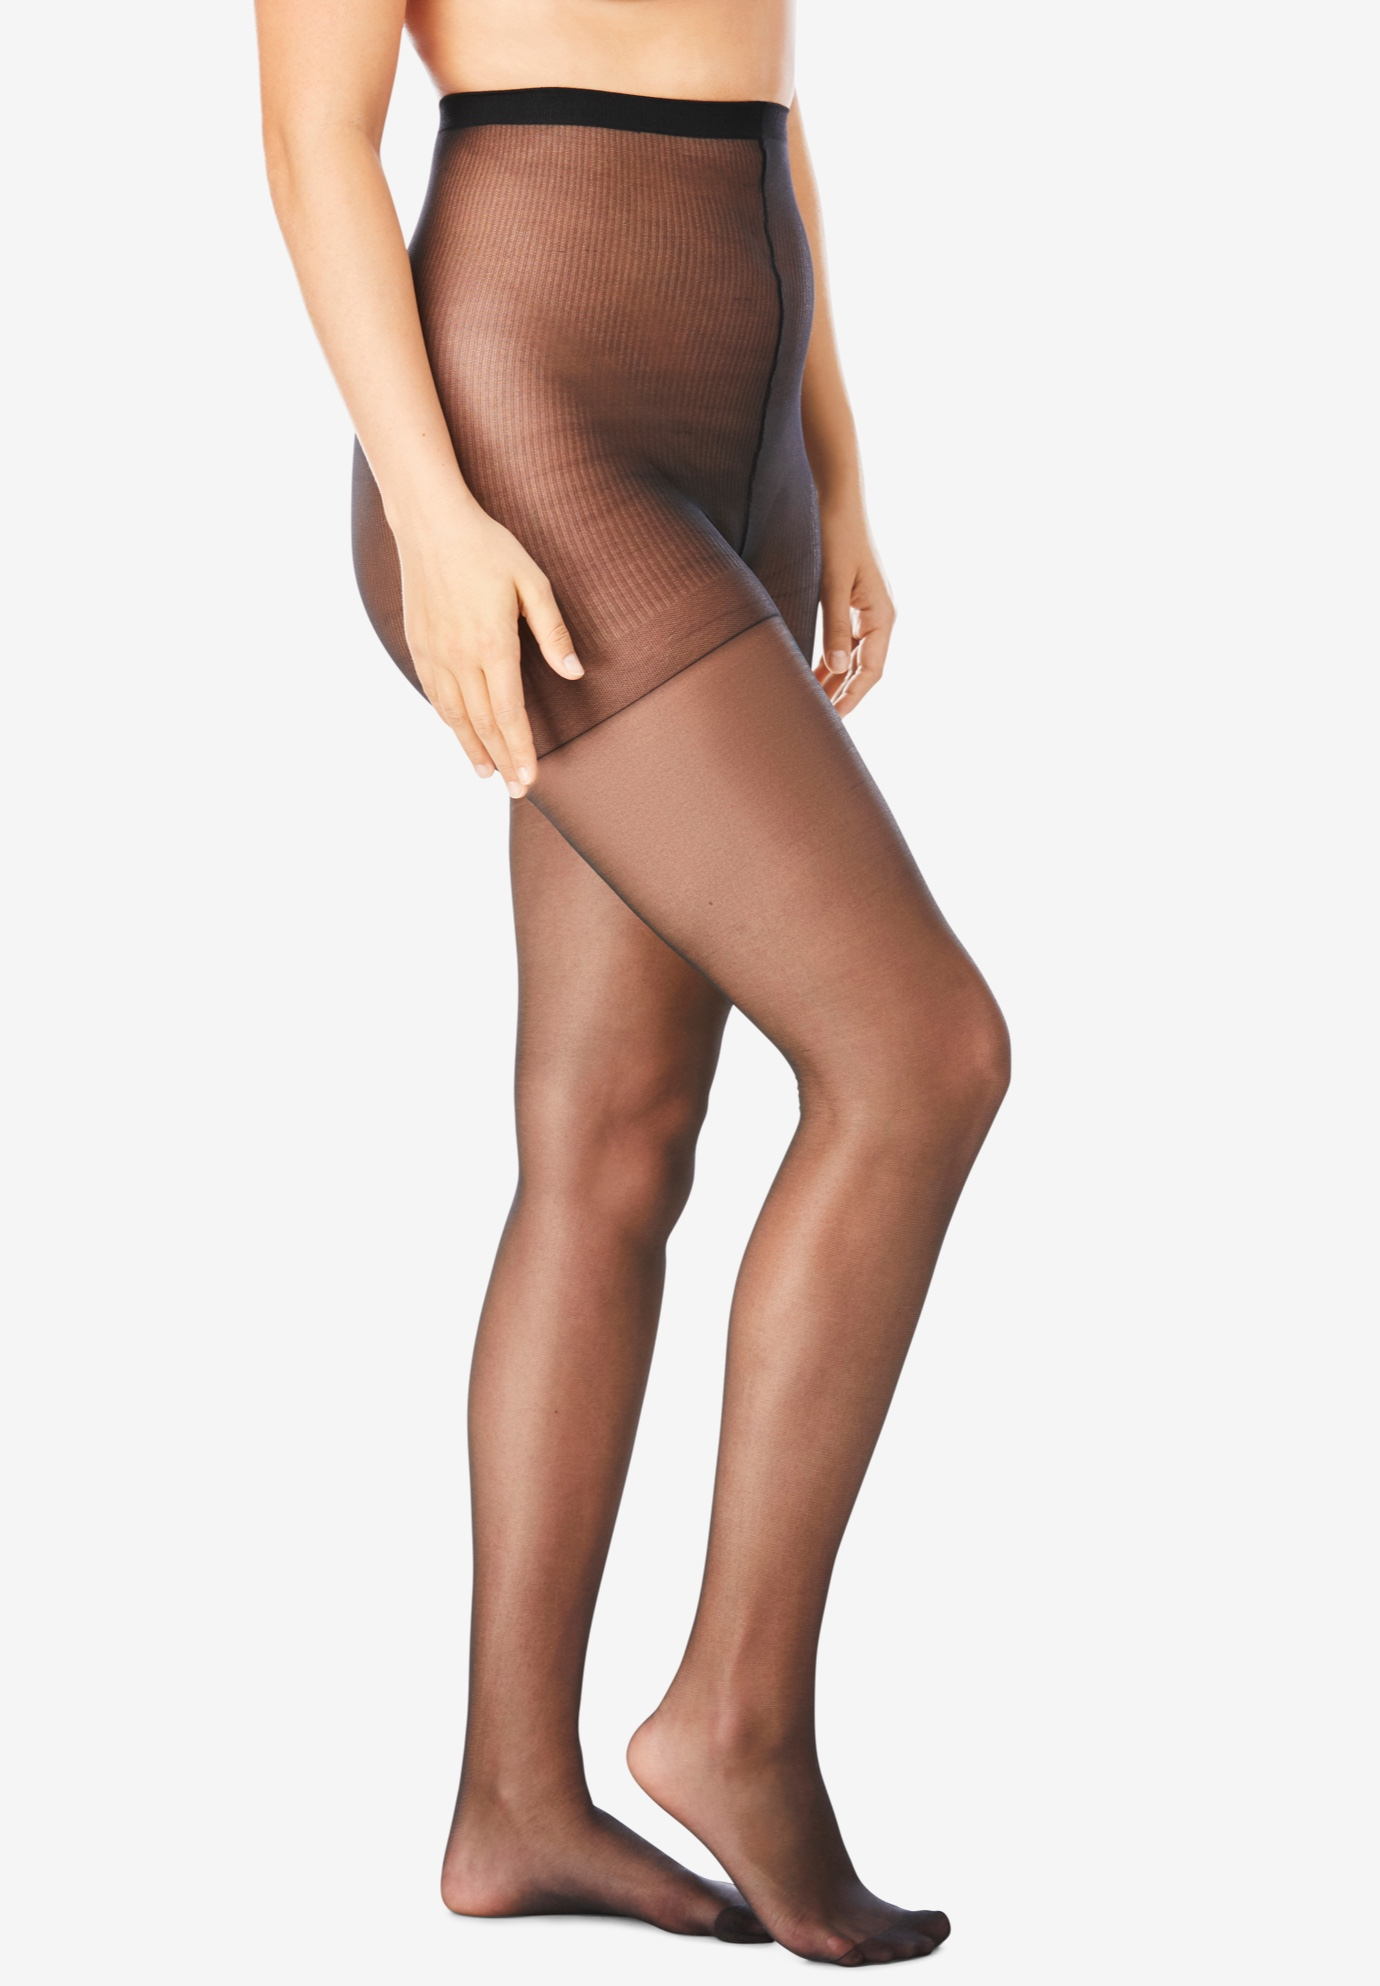 7dfeae9d0cb75 2-Pack Sheer Tights by Comfort Choice®| Plus Size Hosiery & Socks ...